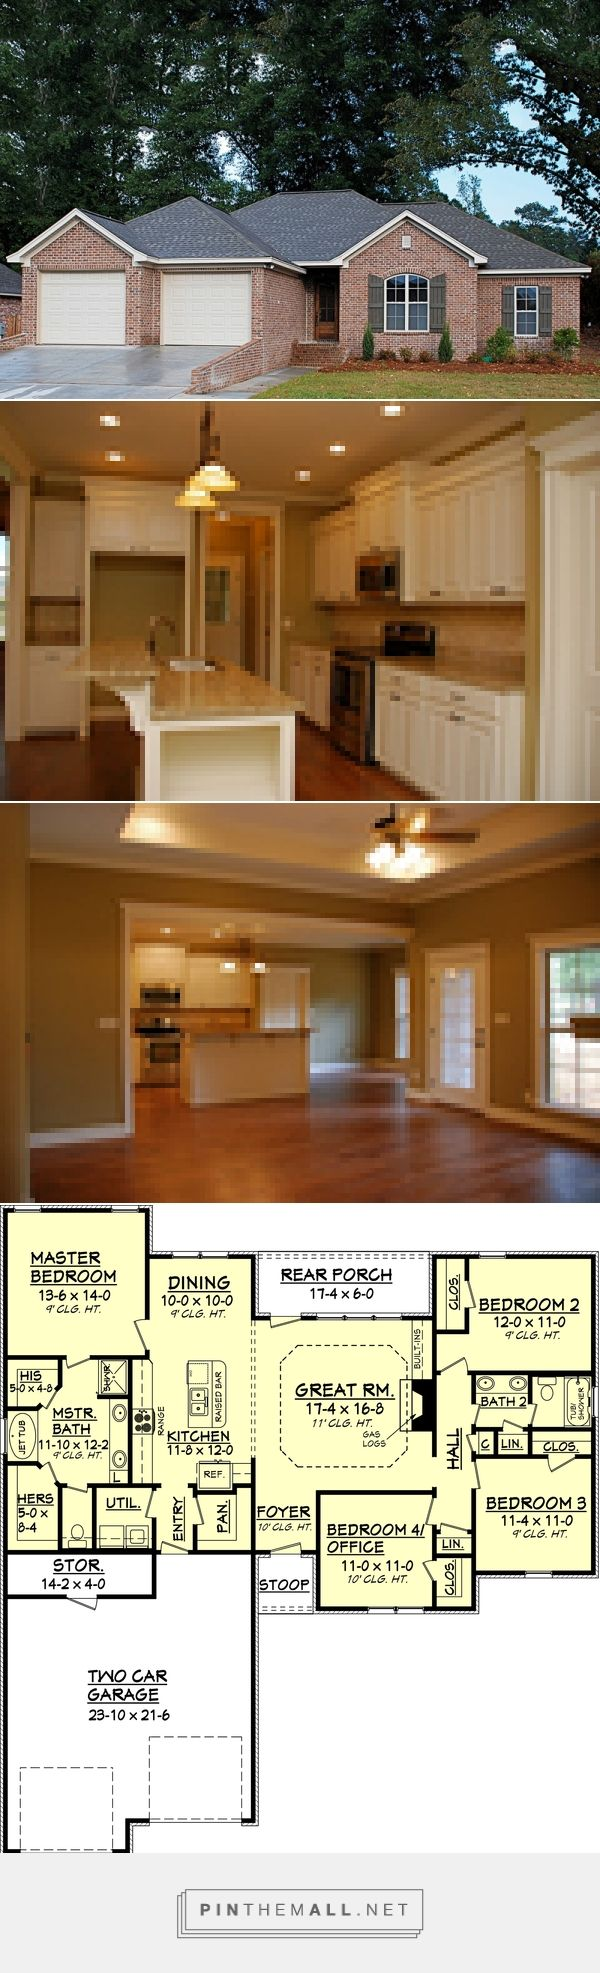 i love this plan the durango model plan features a compelling the durango model plan features a compelling foyer and gallery create a memorable entrance to this ranch style home featuring g pinteres